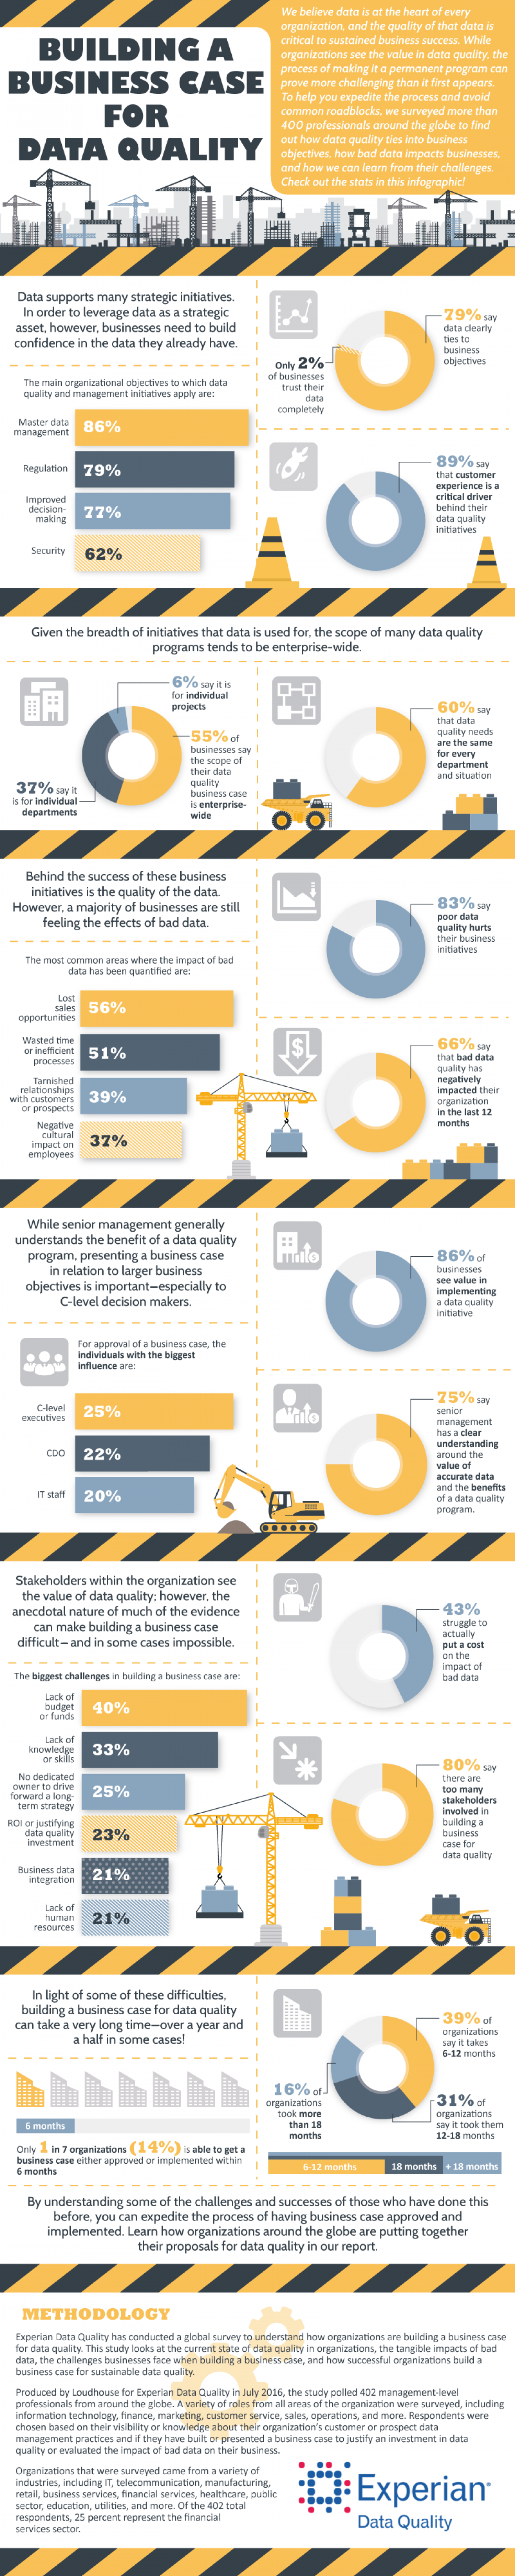 How to Build a Business Case for Data Quality At Your Company Infographic